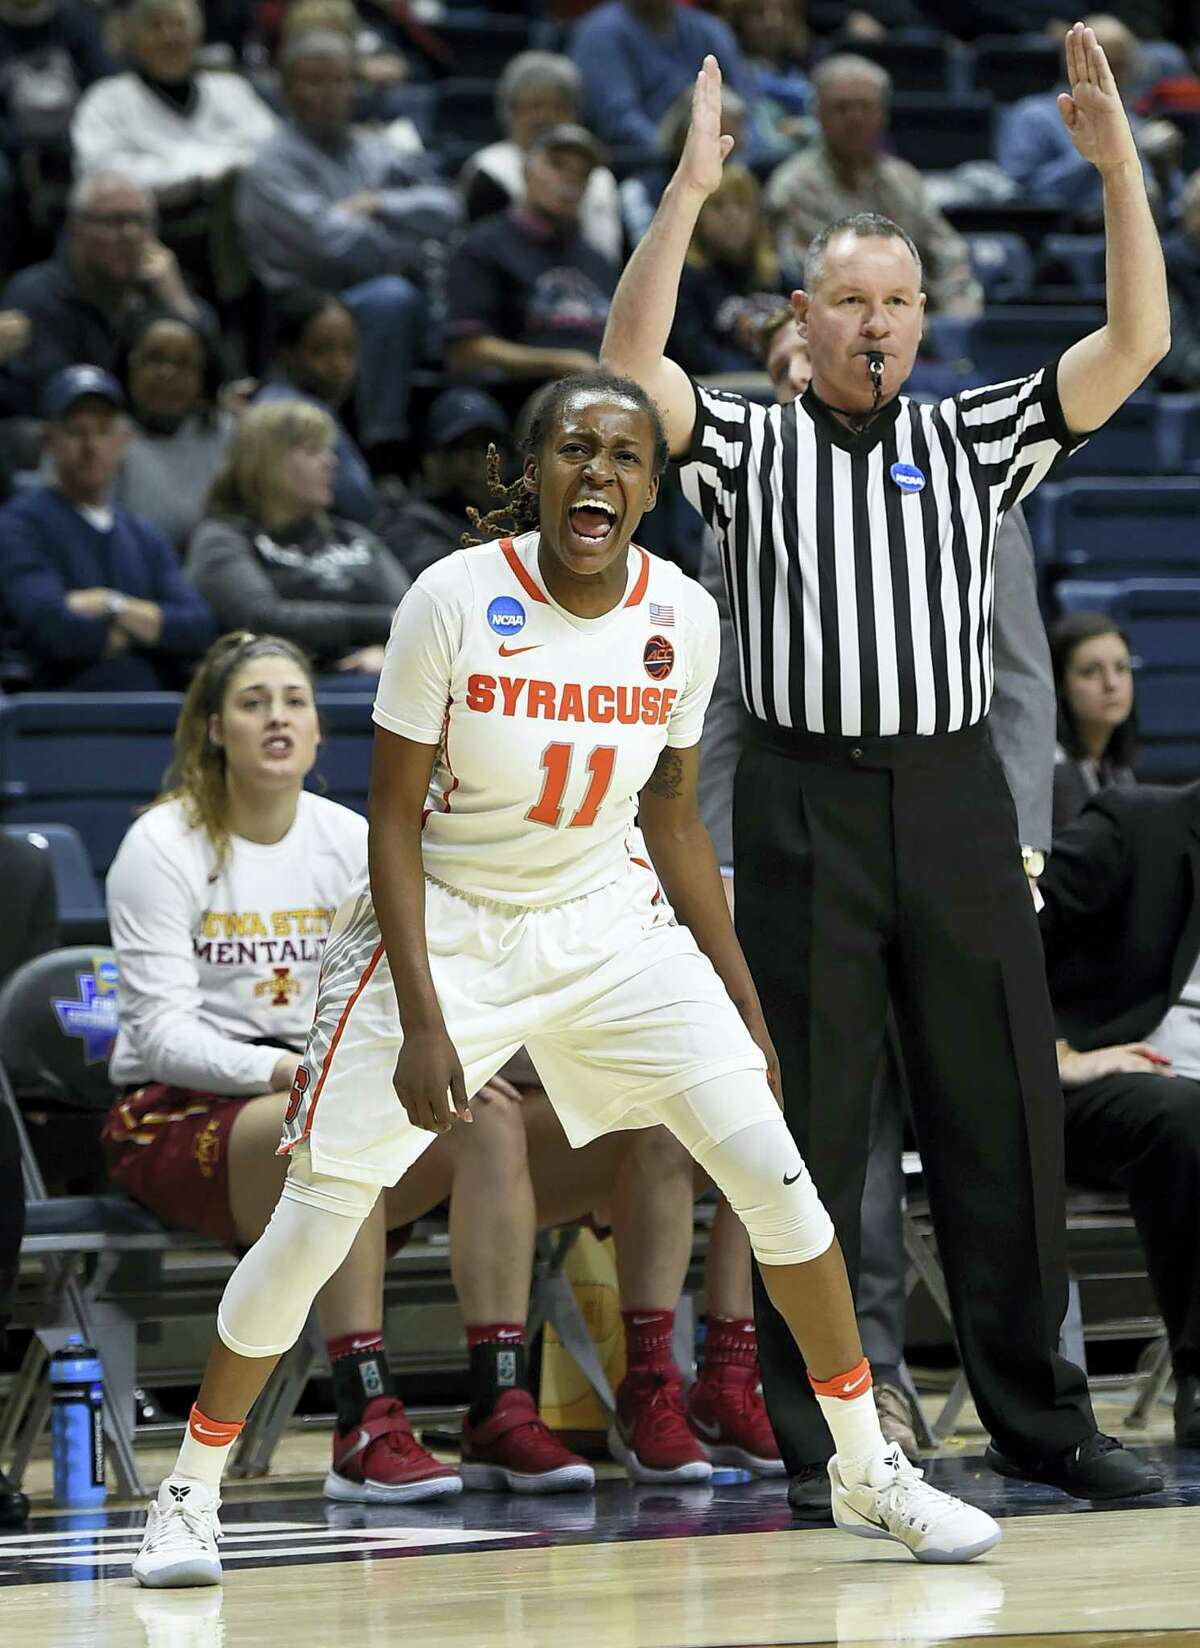 Syracuse's Gabby Cooper reacts after hitting a 3-pointer against Iowa State on Saturday.